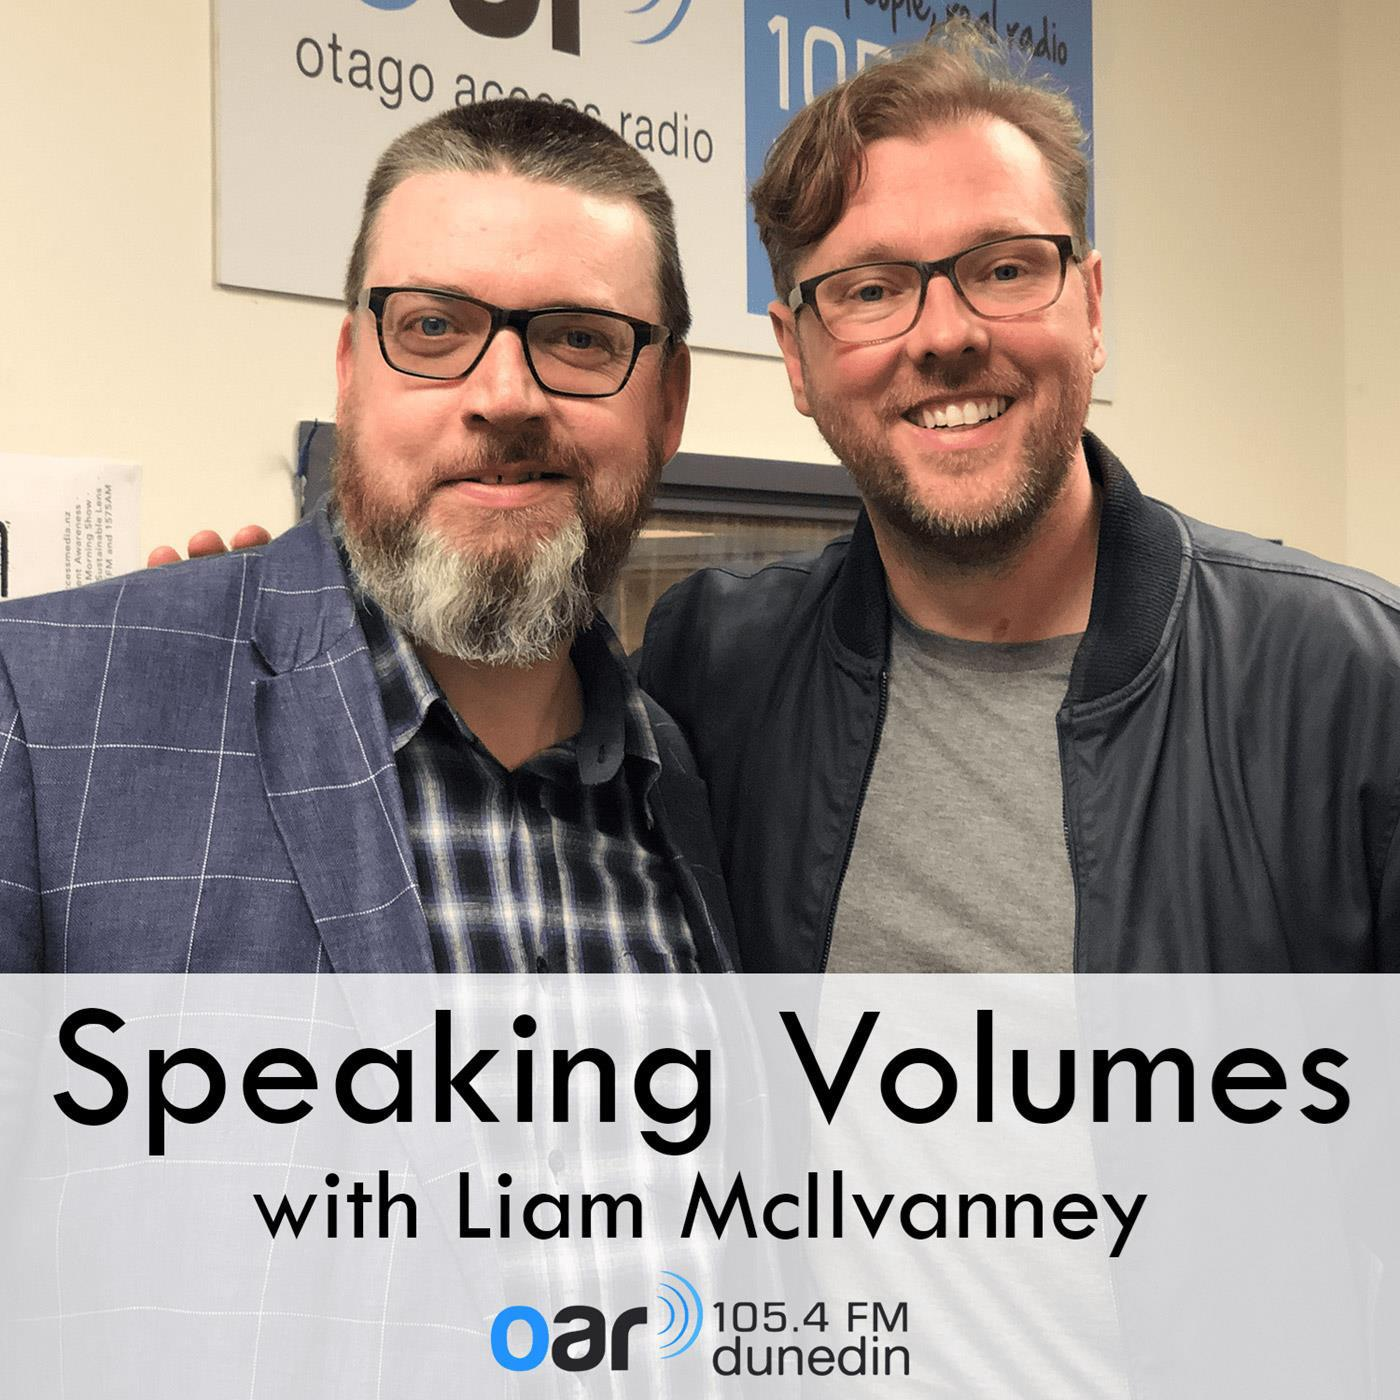 Speaking Volumes with Liam McIlvanney